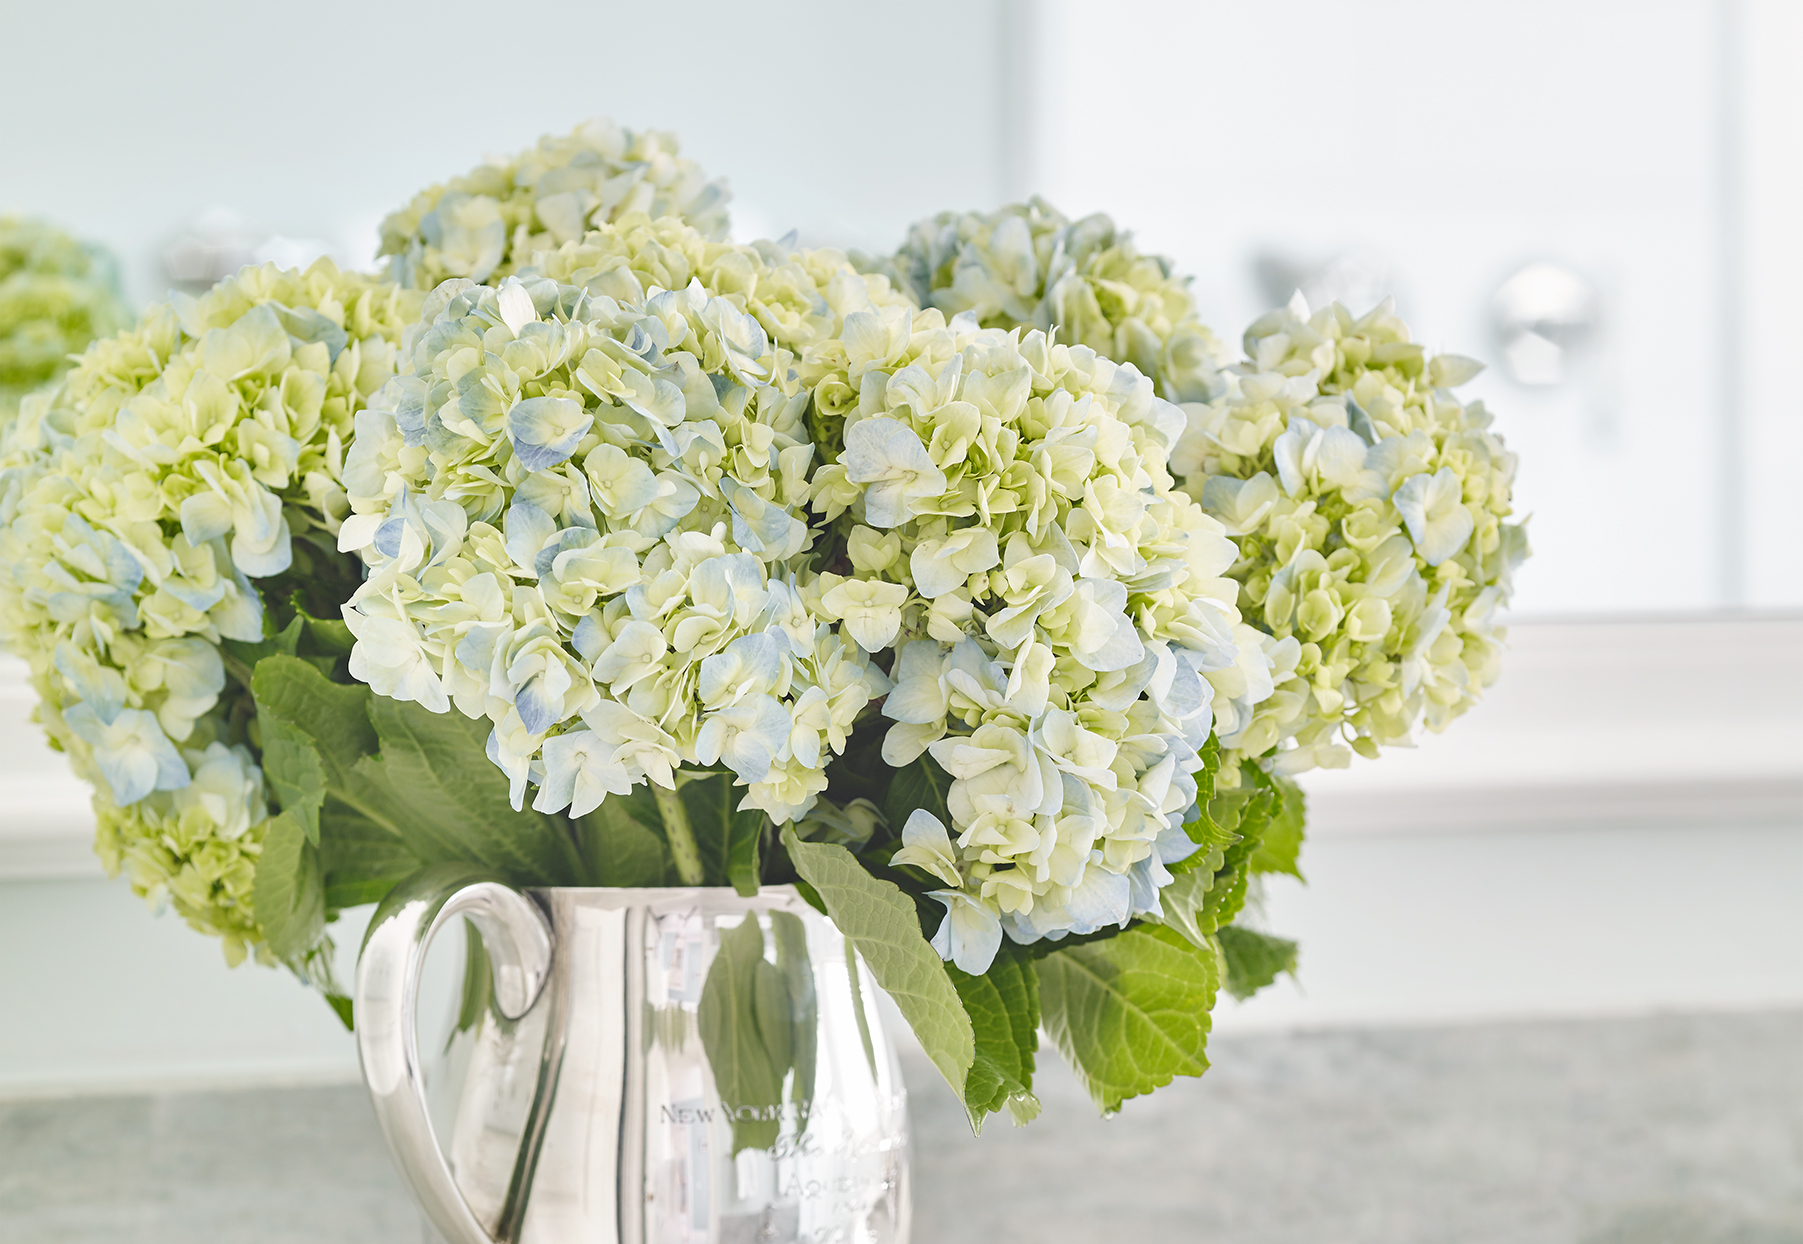 Cut Hydrangeas Wilting Use This Simple Trick To Revive Your Blooms Better Homes Gardens